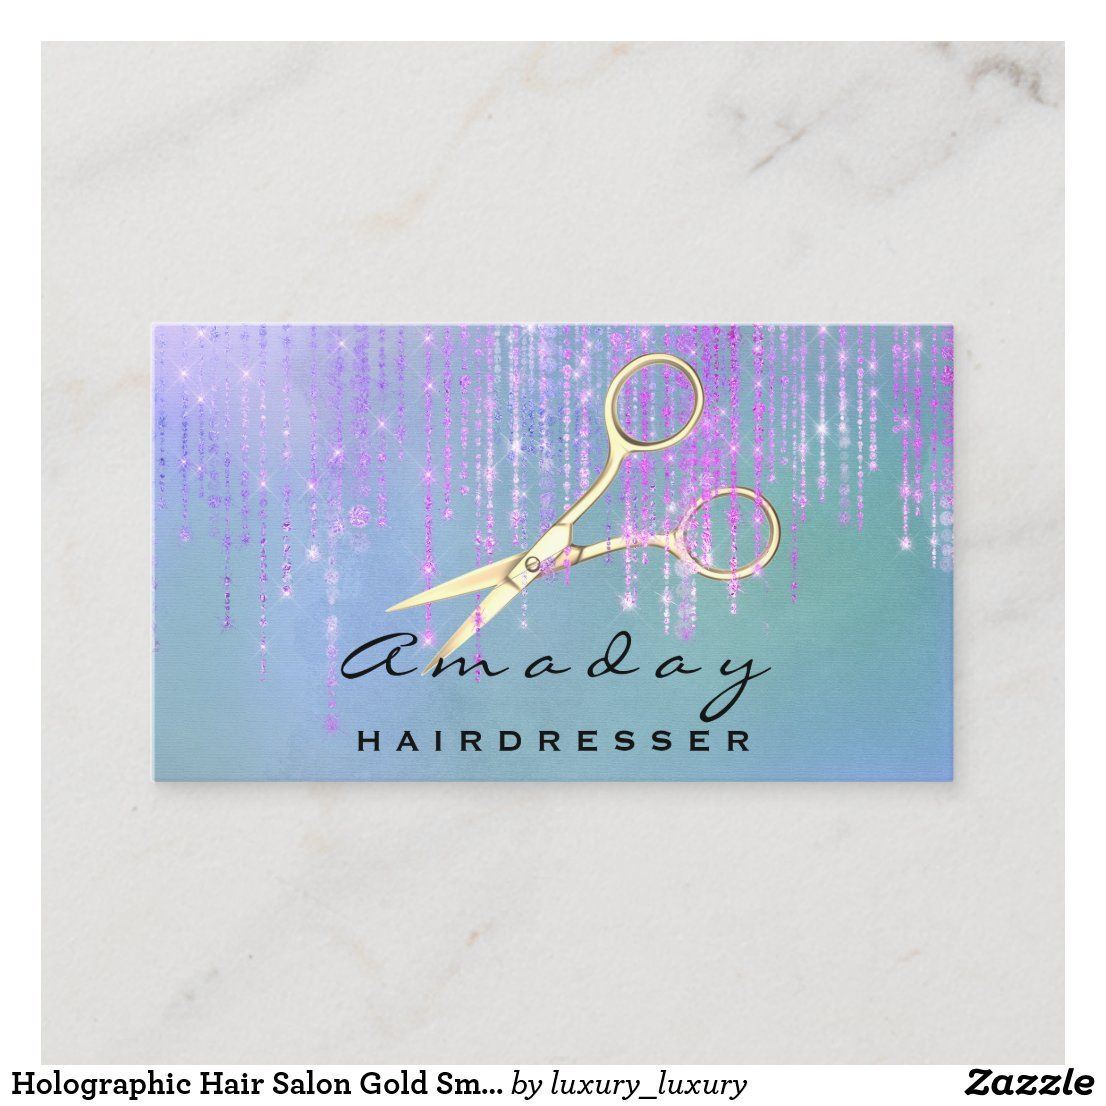 Holographic Hair Salon Gold Smoky Scissors Drips Business